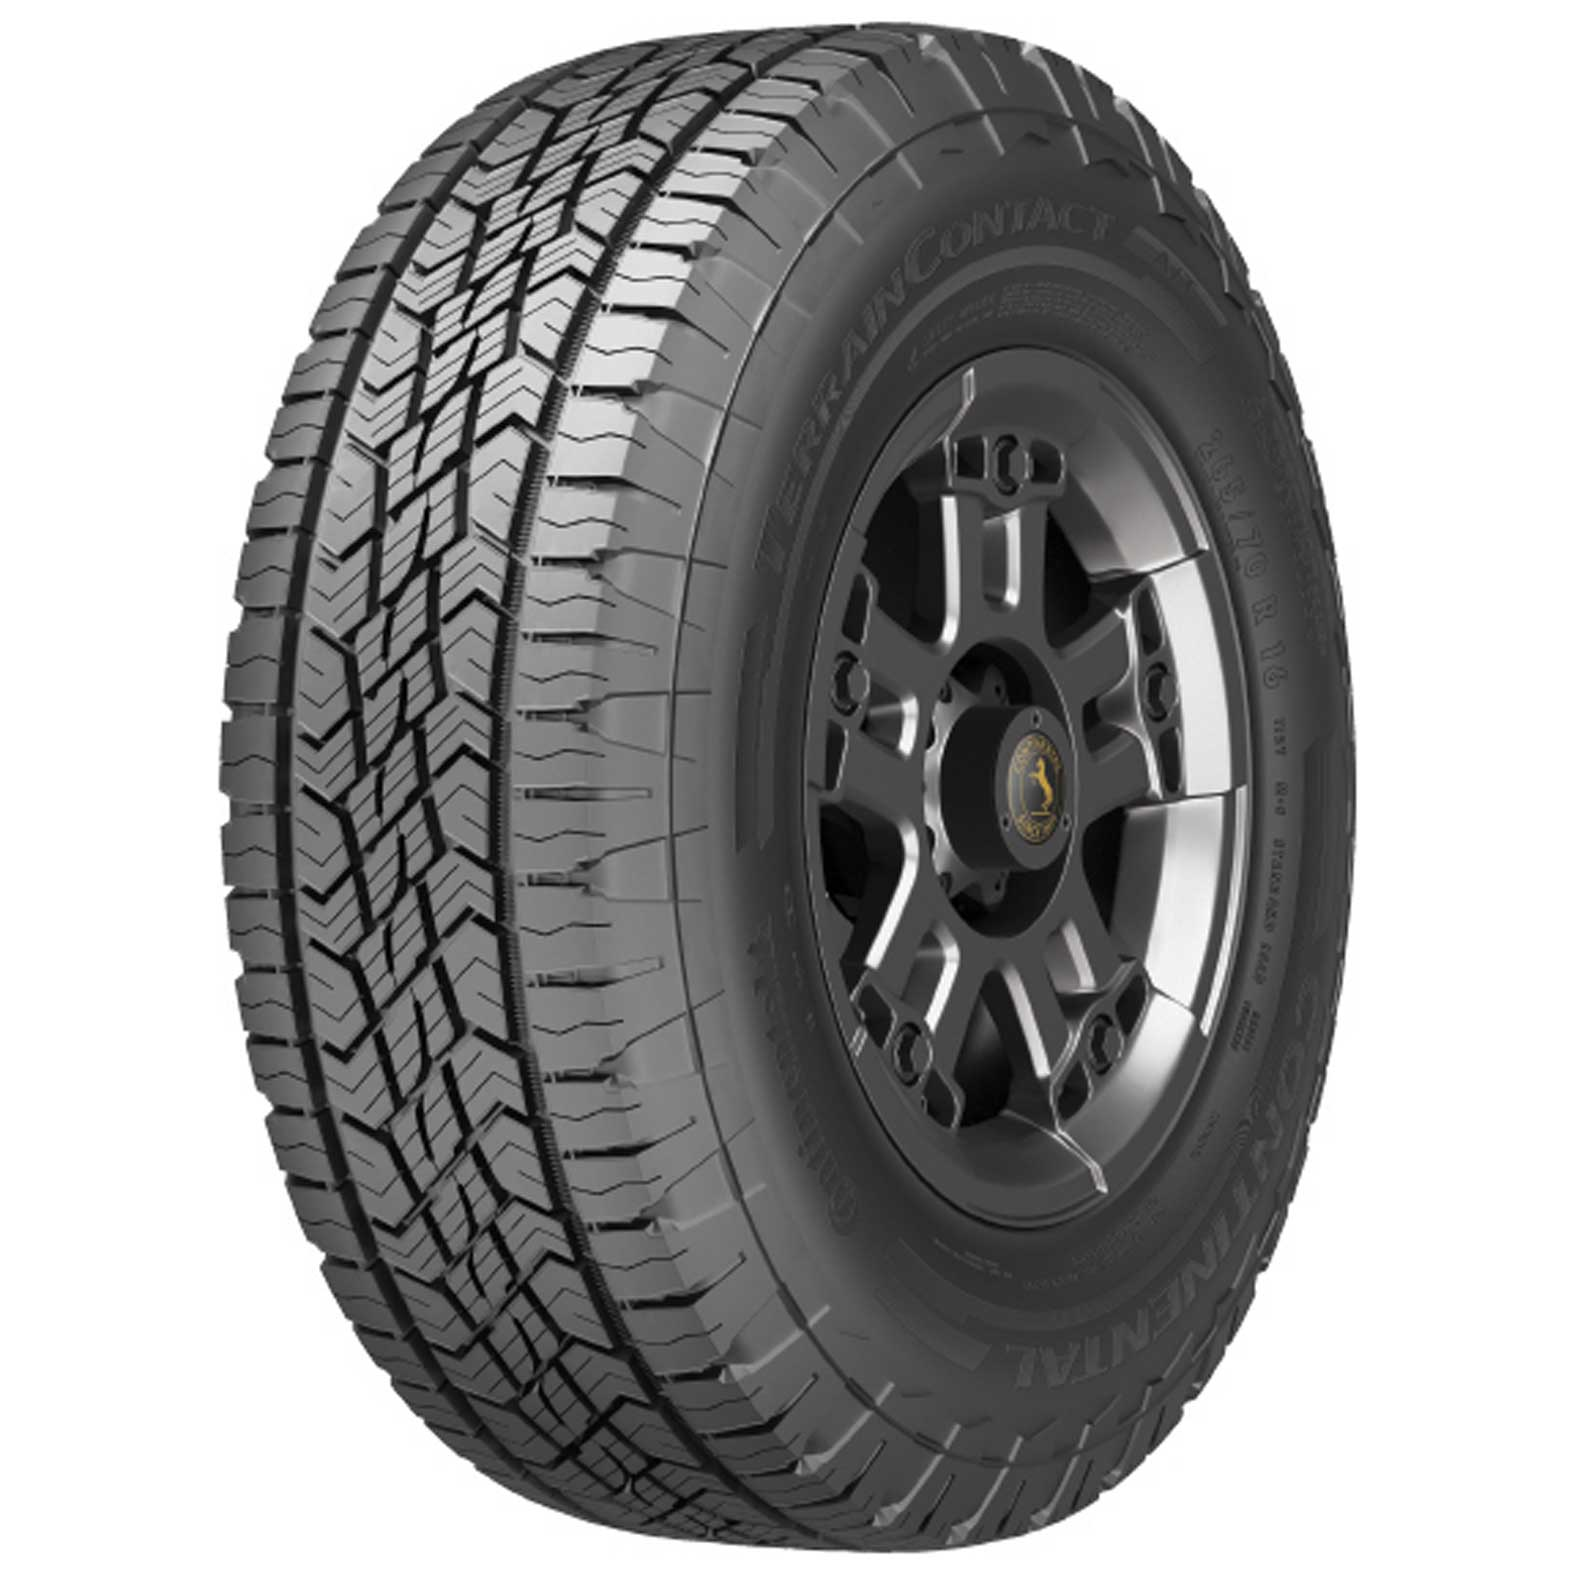 Continental TERRAIN CONTACT A/T tire - angle